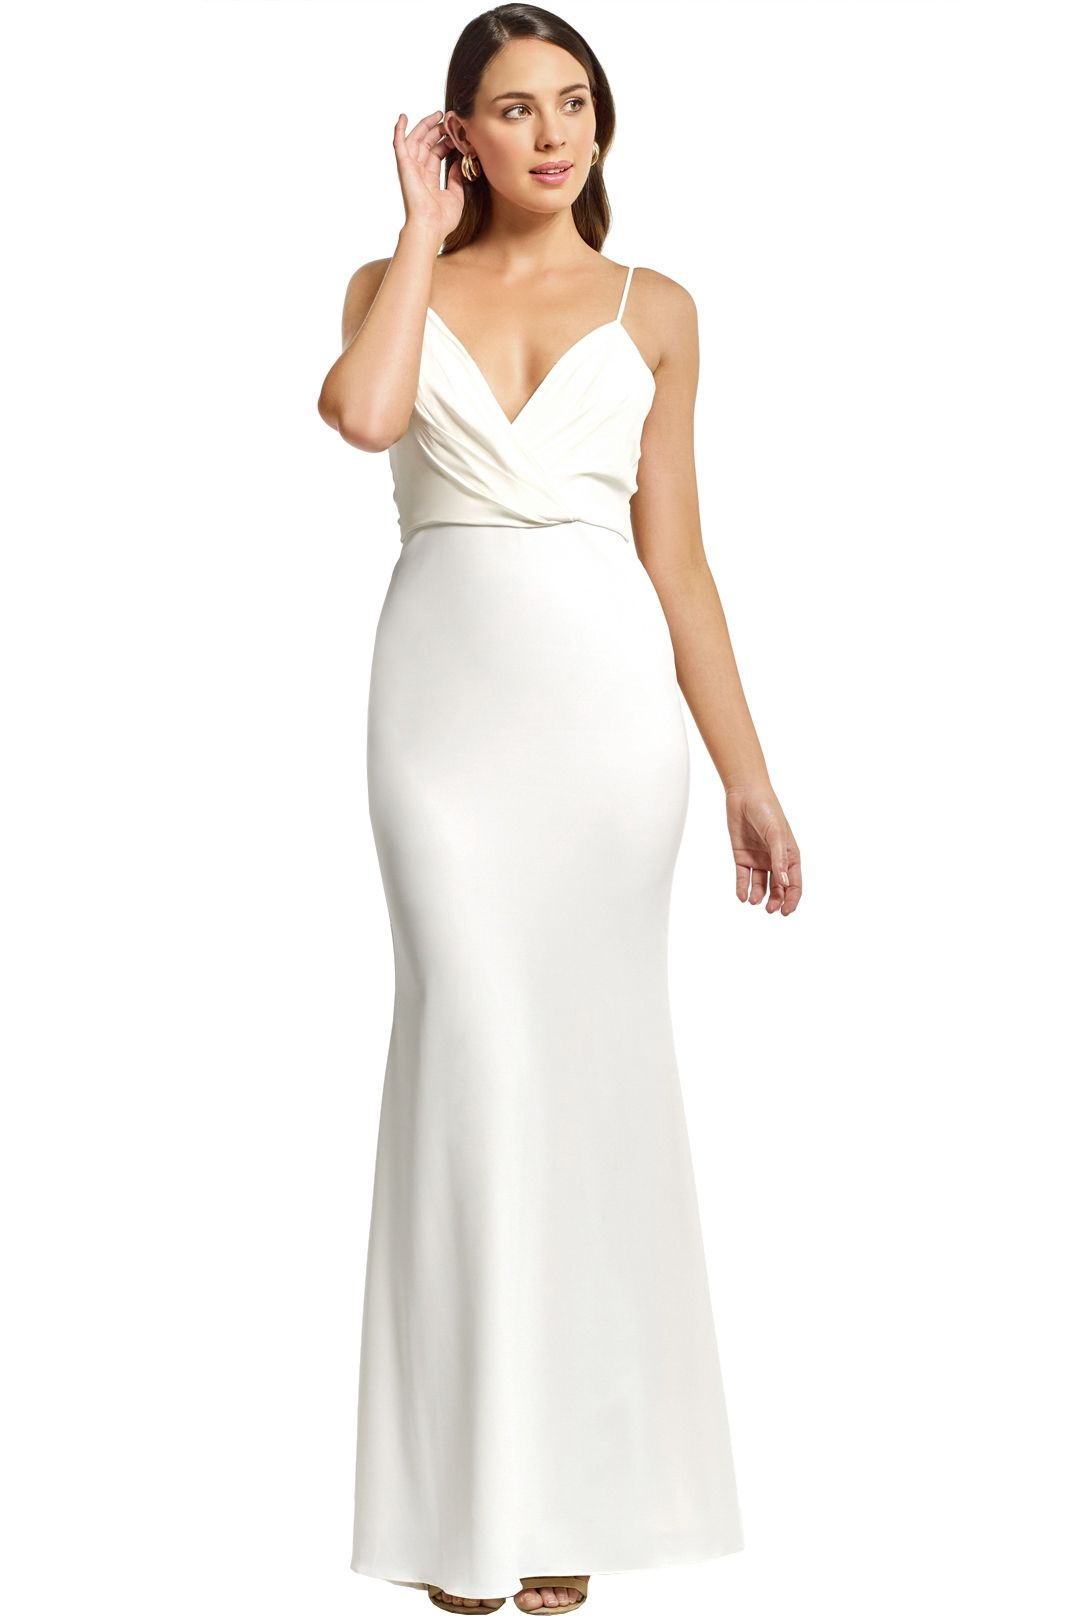 Badgley Mischka - Draped Top Crepe Skirt Gown - Ivory - Front